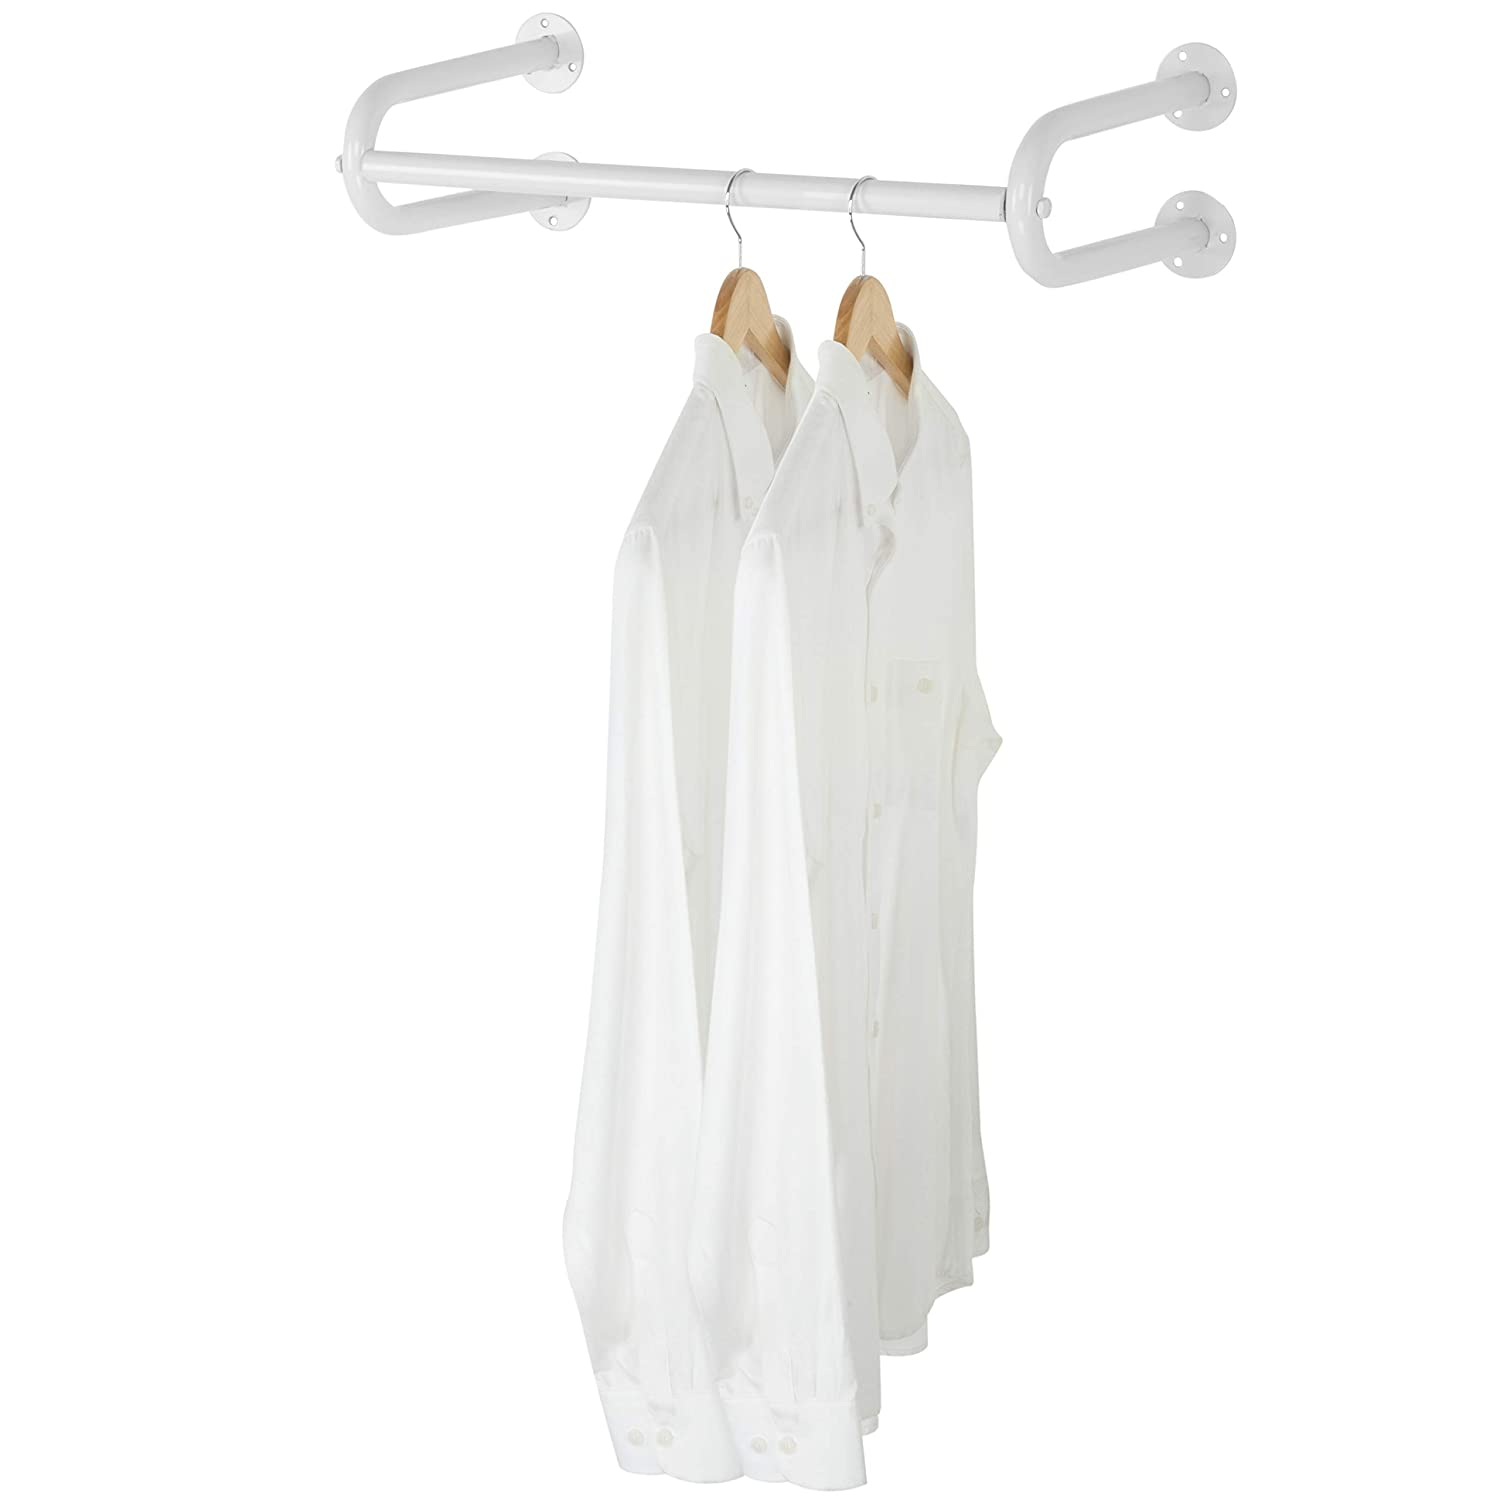 MyGift 24-Inch White Metal Wall-Mounted Garment Hanging Bar